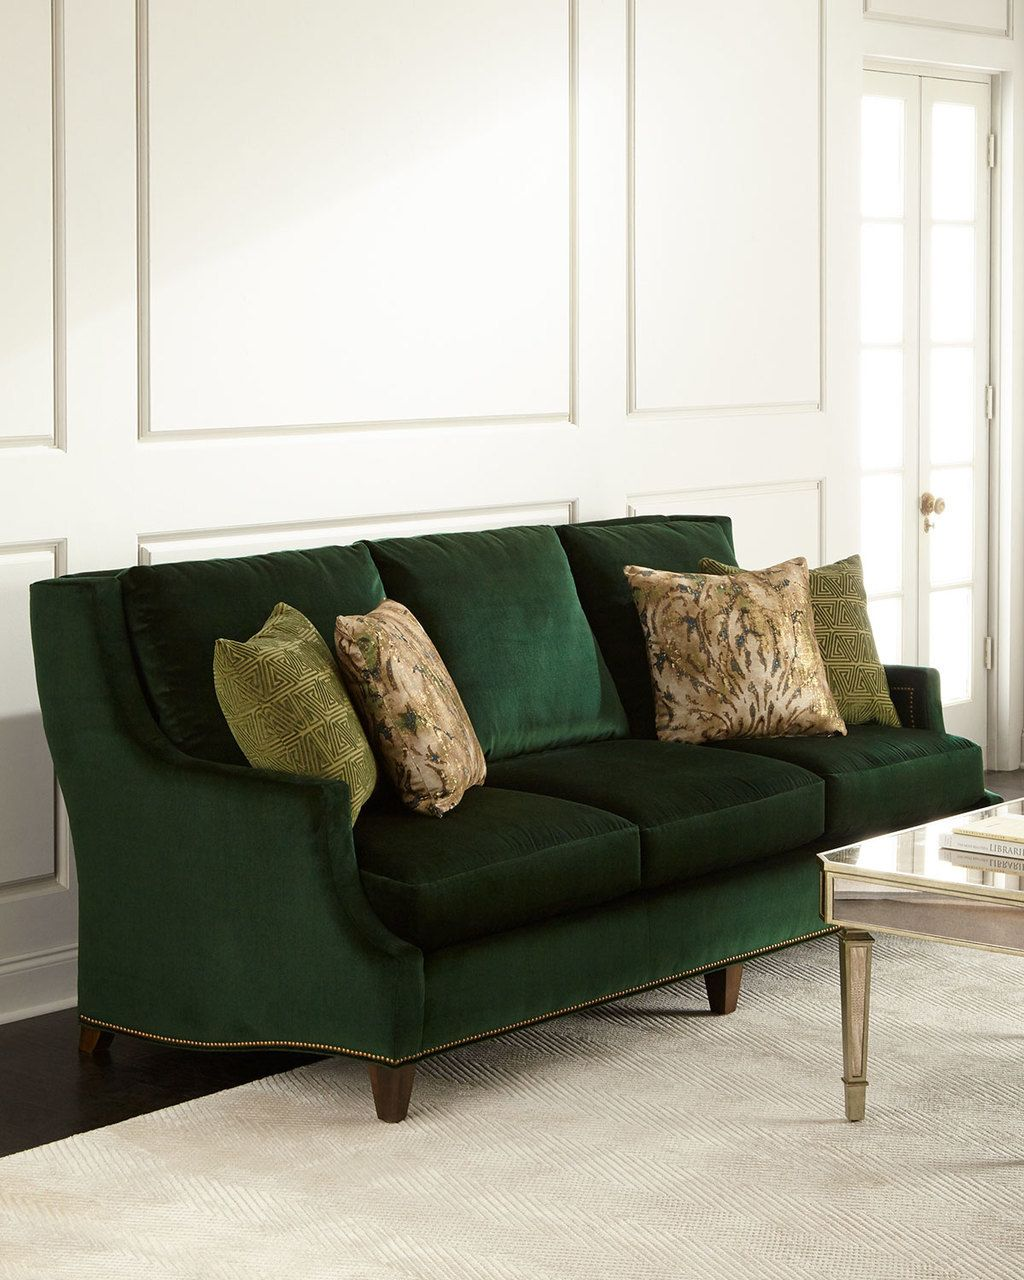 Moud Marlena Emerald Sofa 4450 Free Shipping Or Pick Up Compare Elsewhere 4800 Interexhome Com